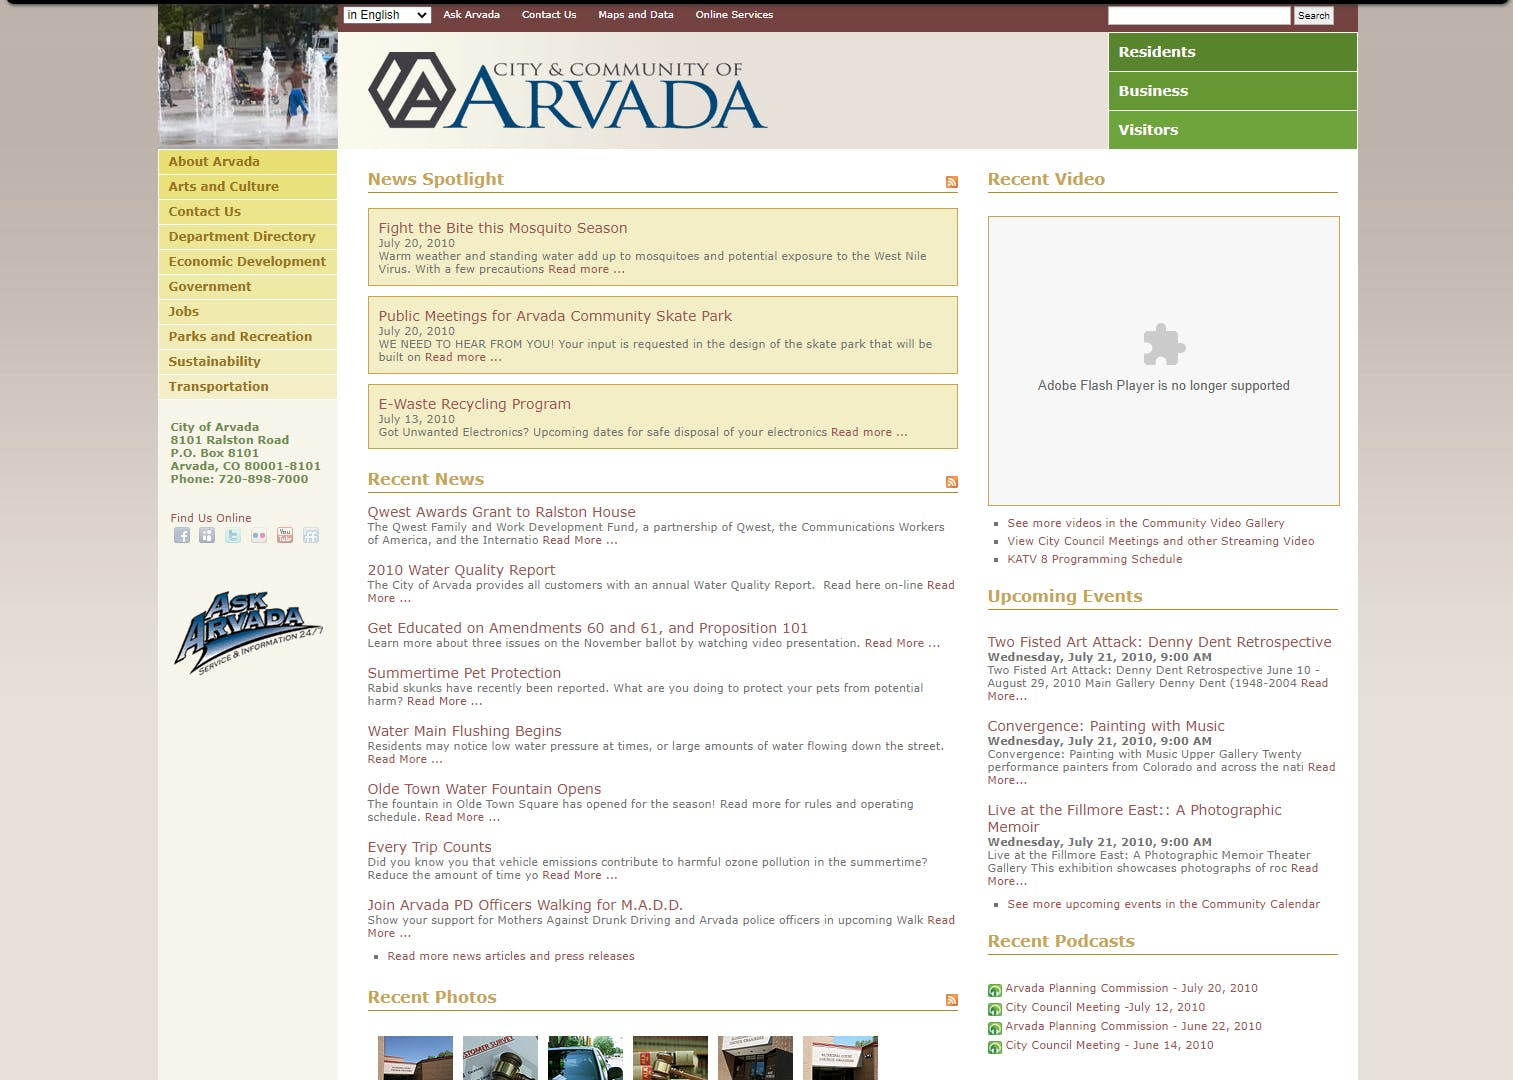 Arvada.org in 2010